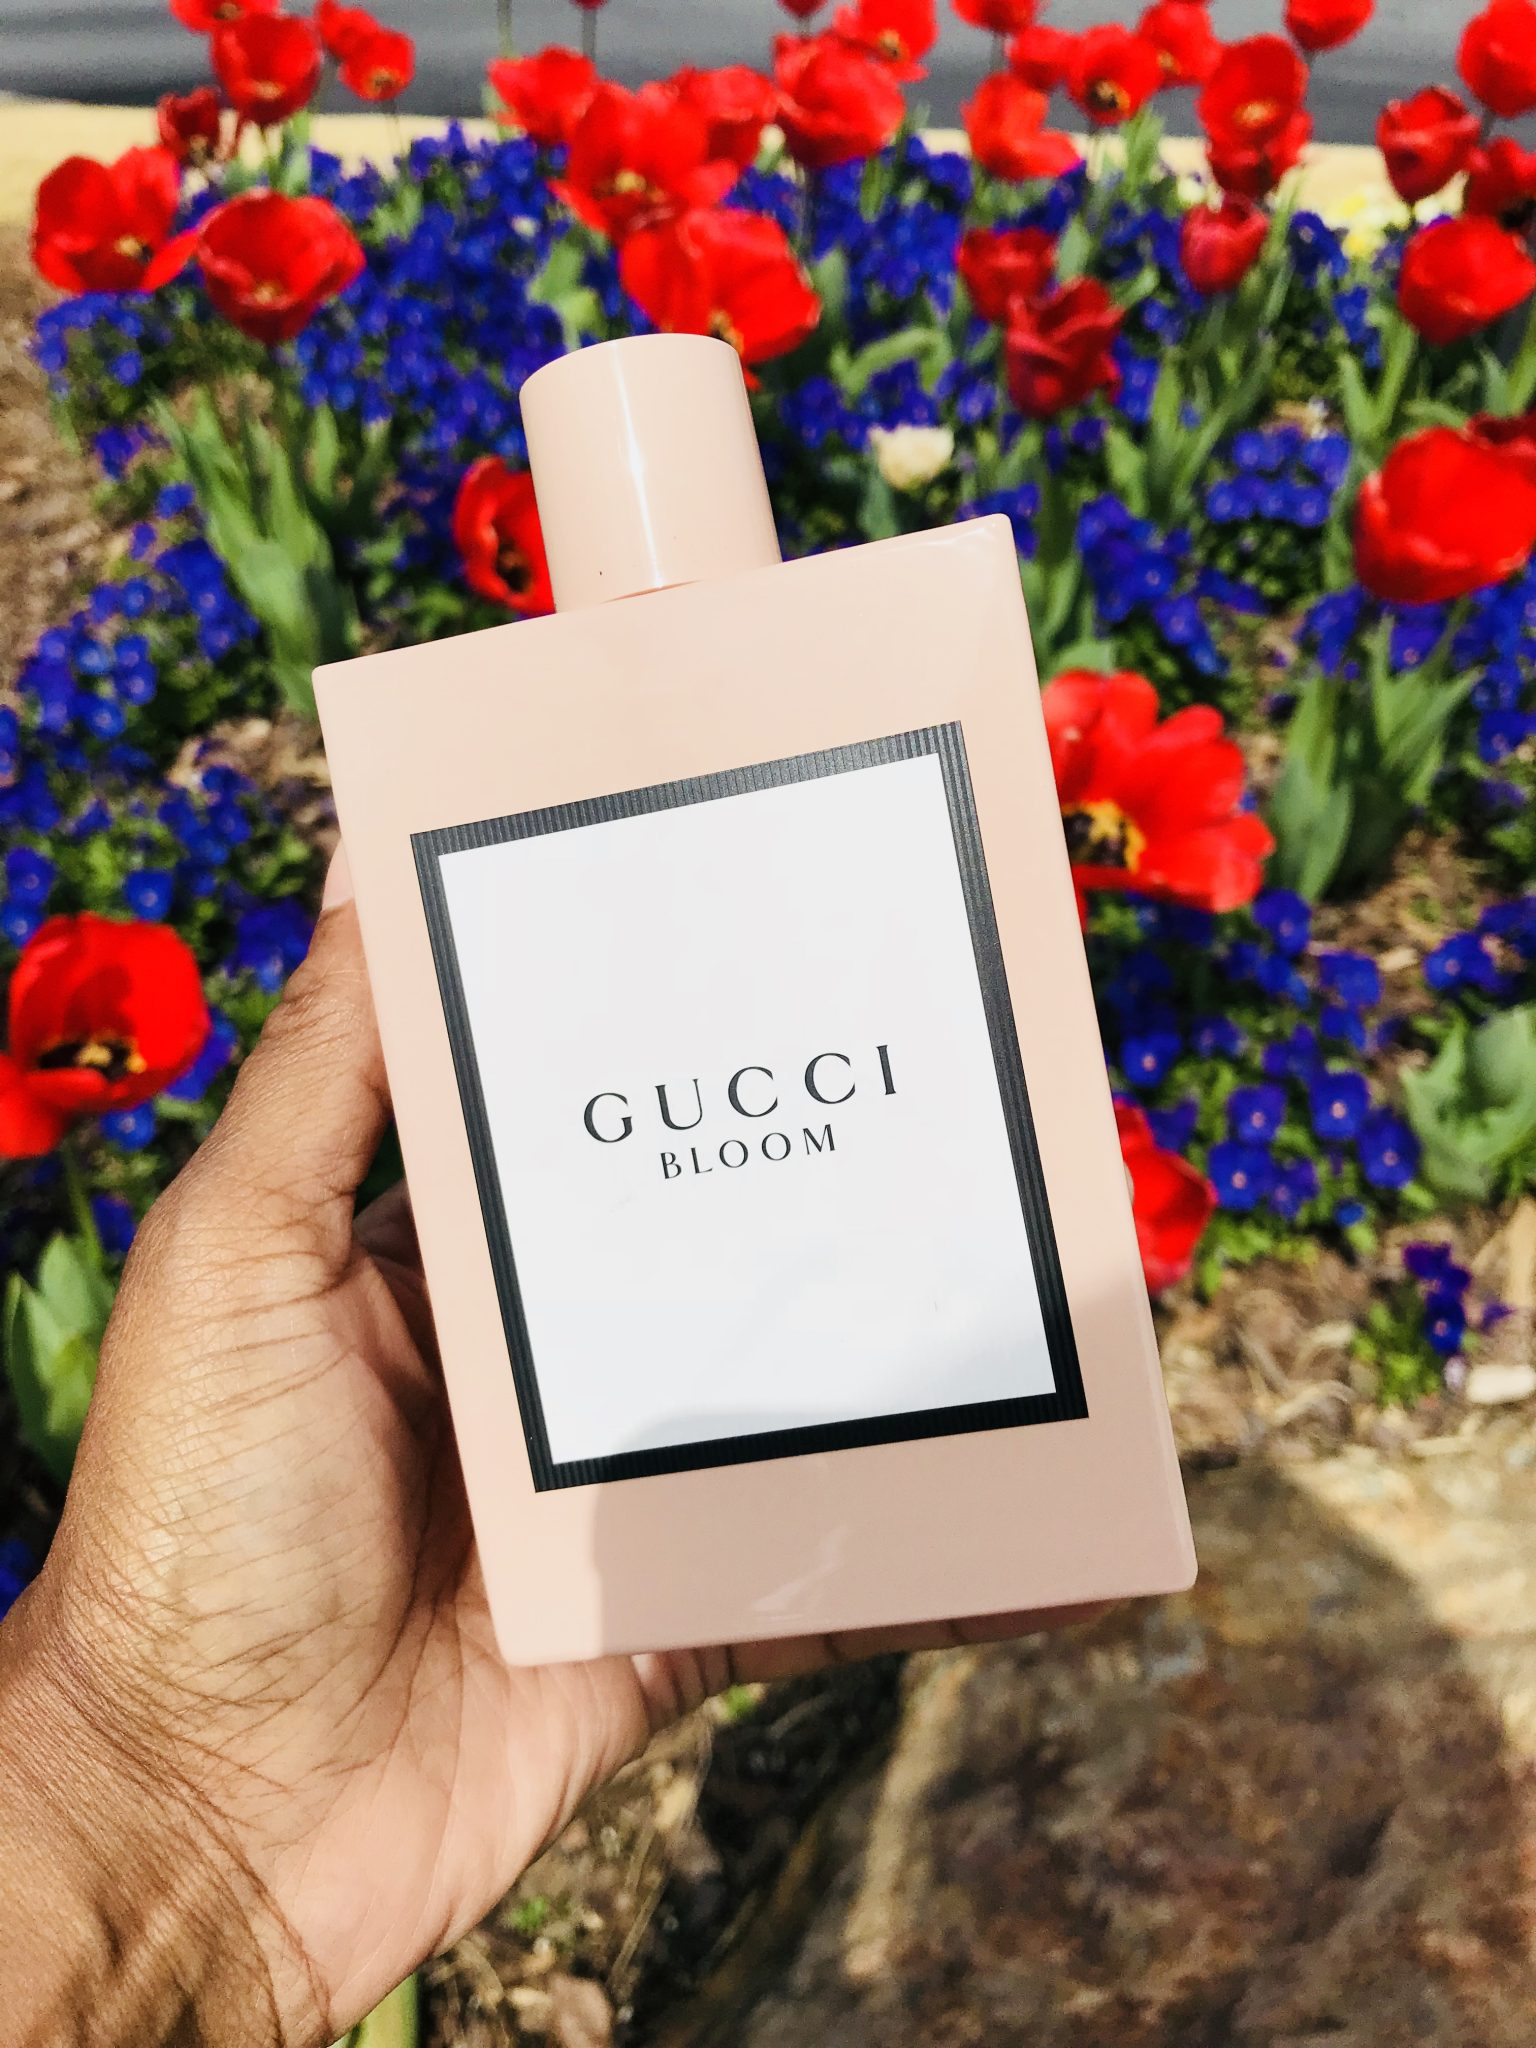 New Fragrance: Gucci Bloom